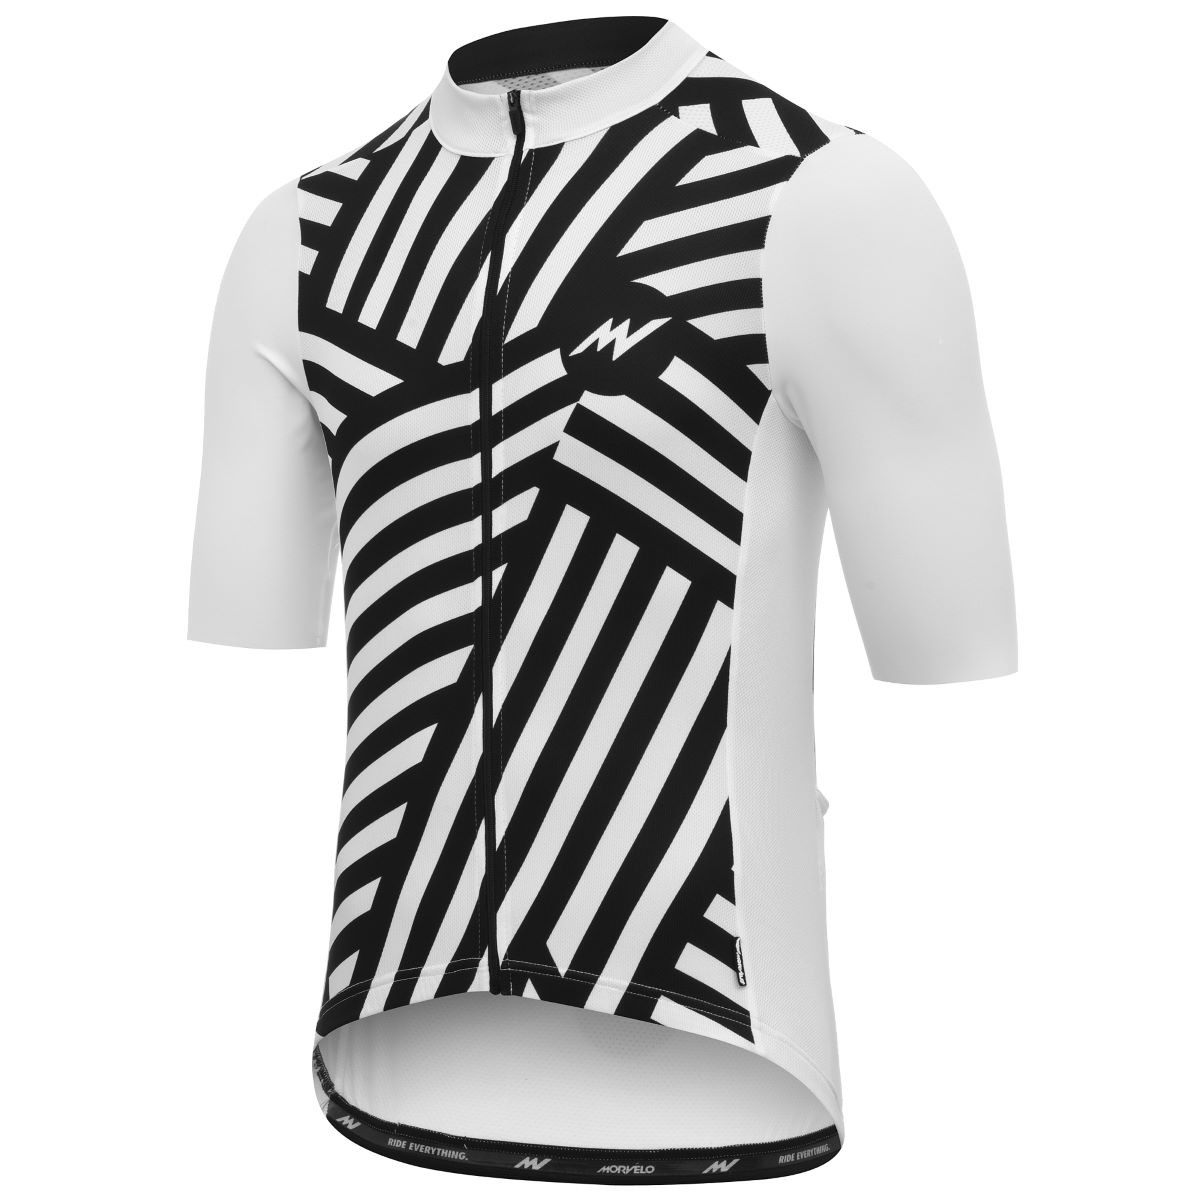 Maillot Morvélo 10 Year Celebration Point - Maillots